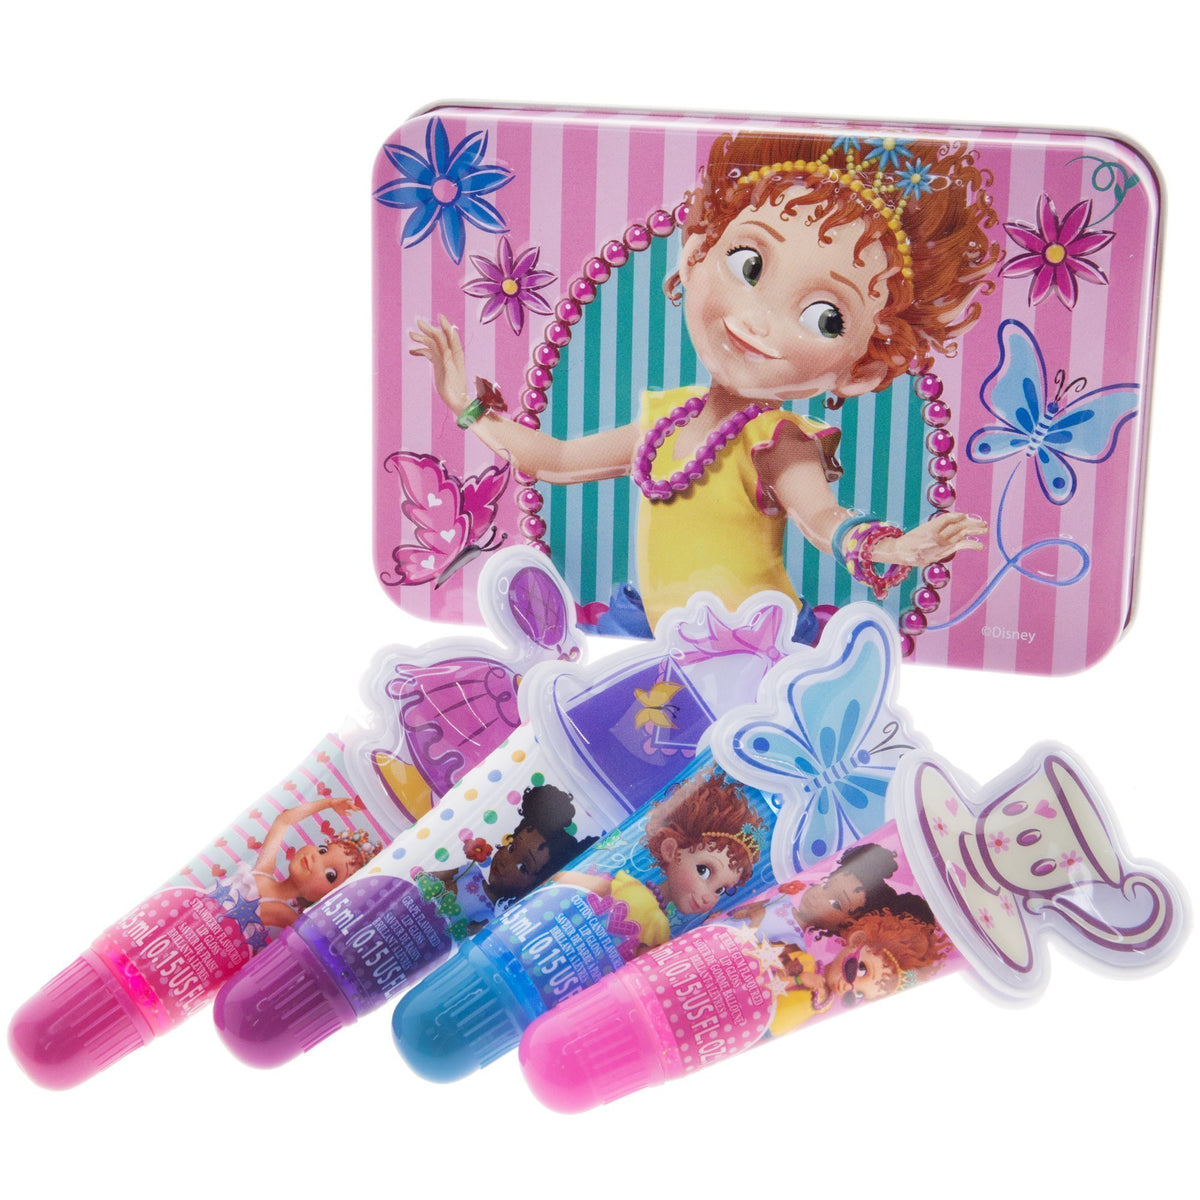 Fancy Nancy 4 Pk Lip Gloss With Bonus Case Townleygirl